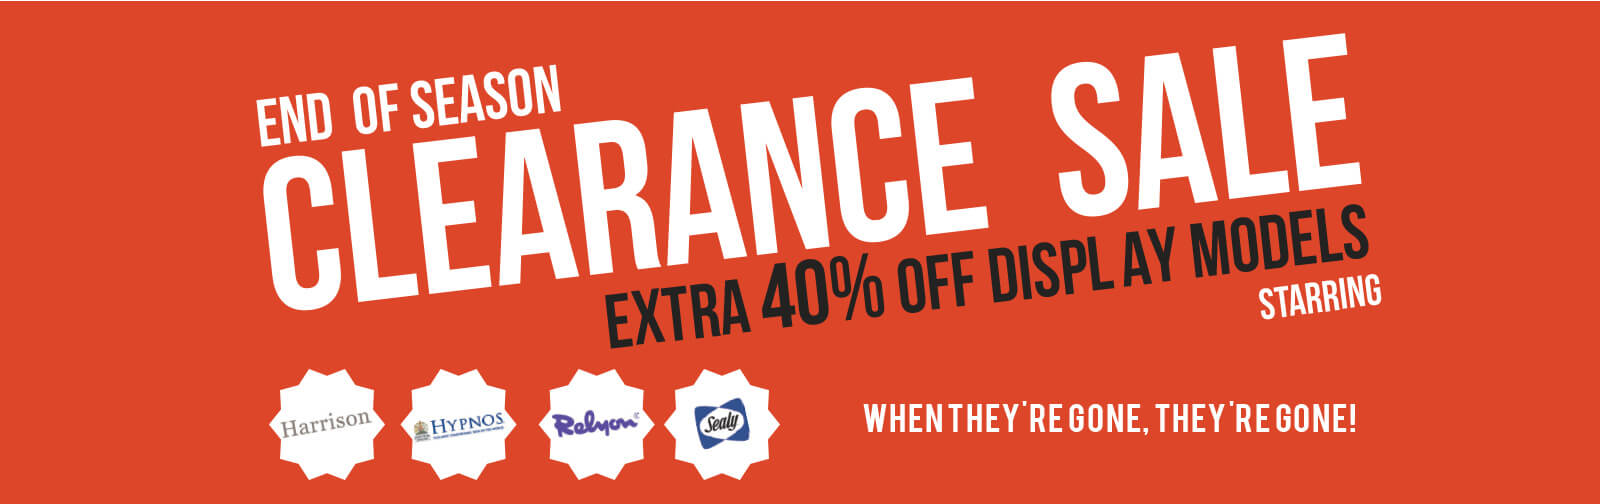 Clearance-sale-banner40